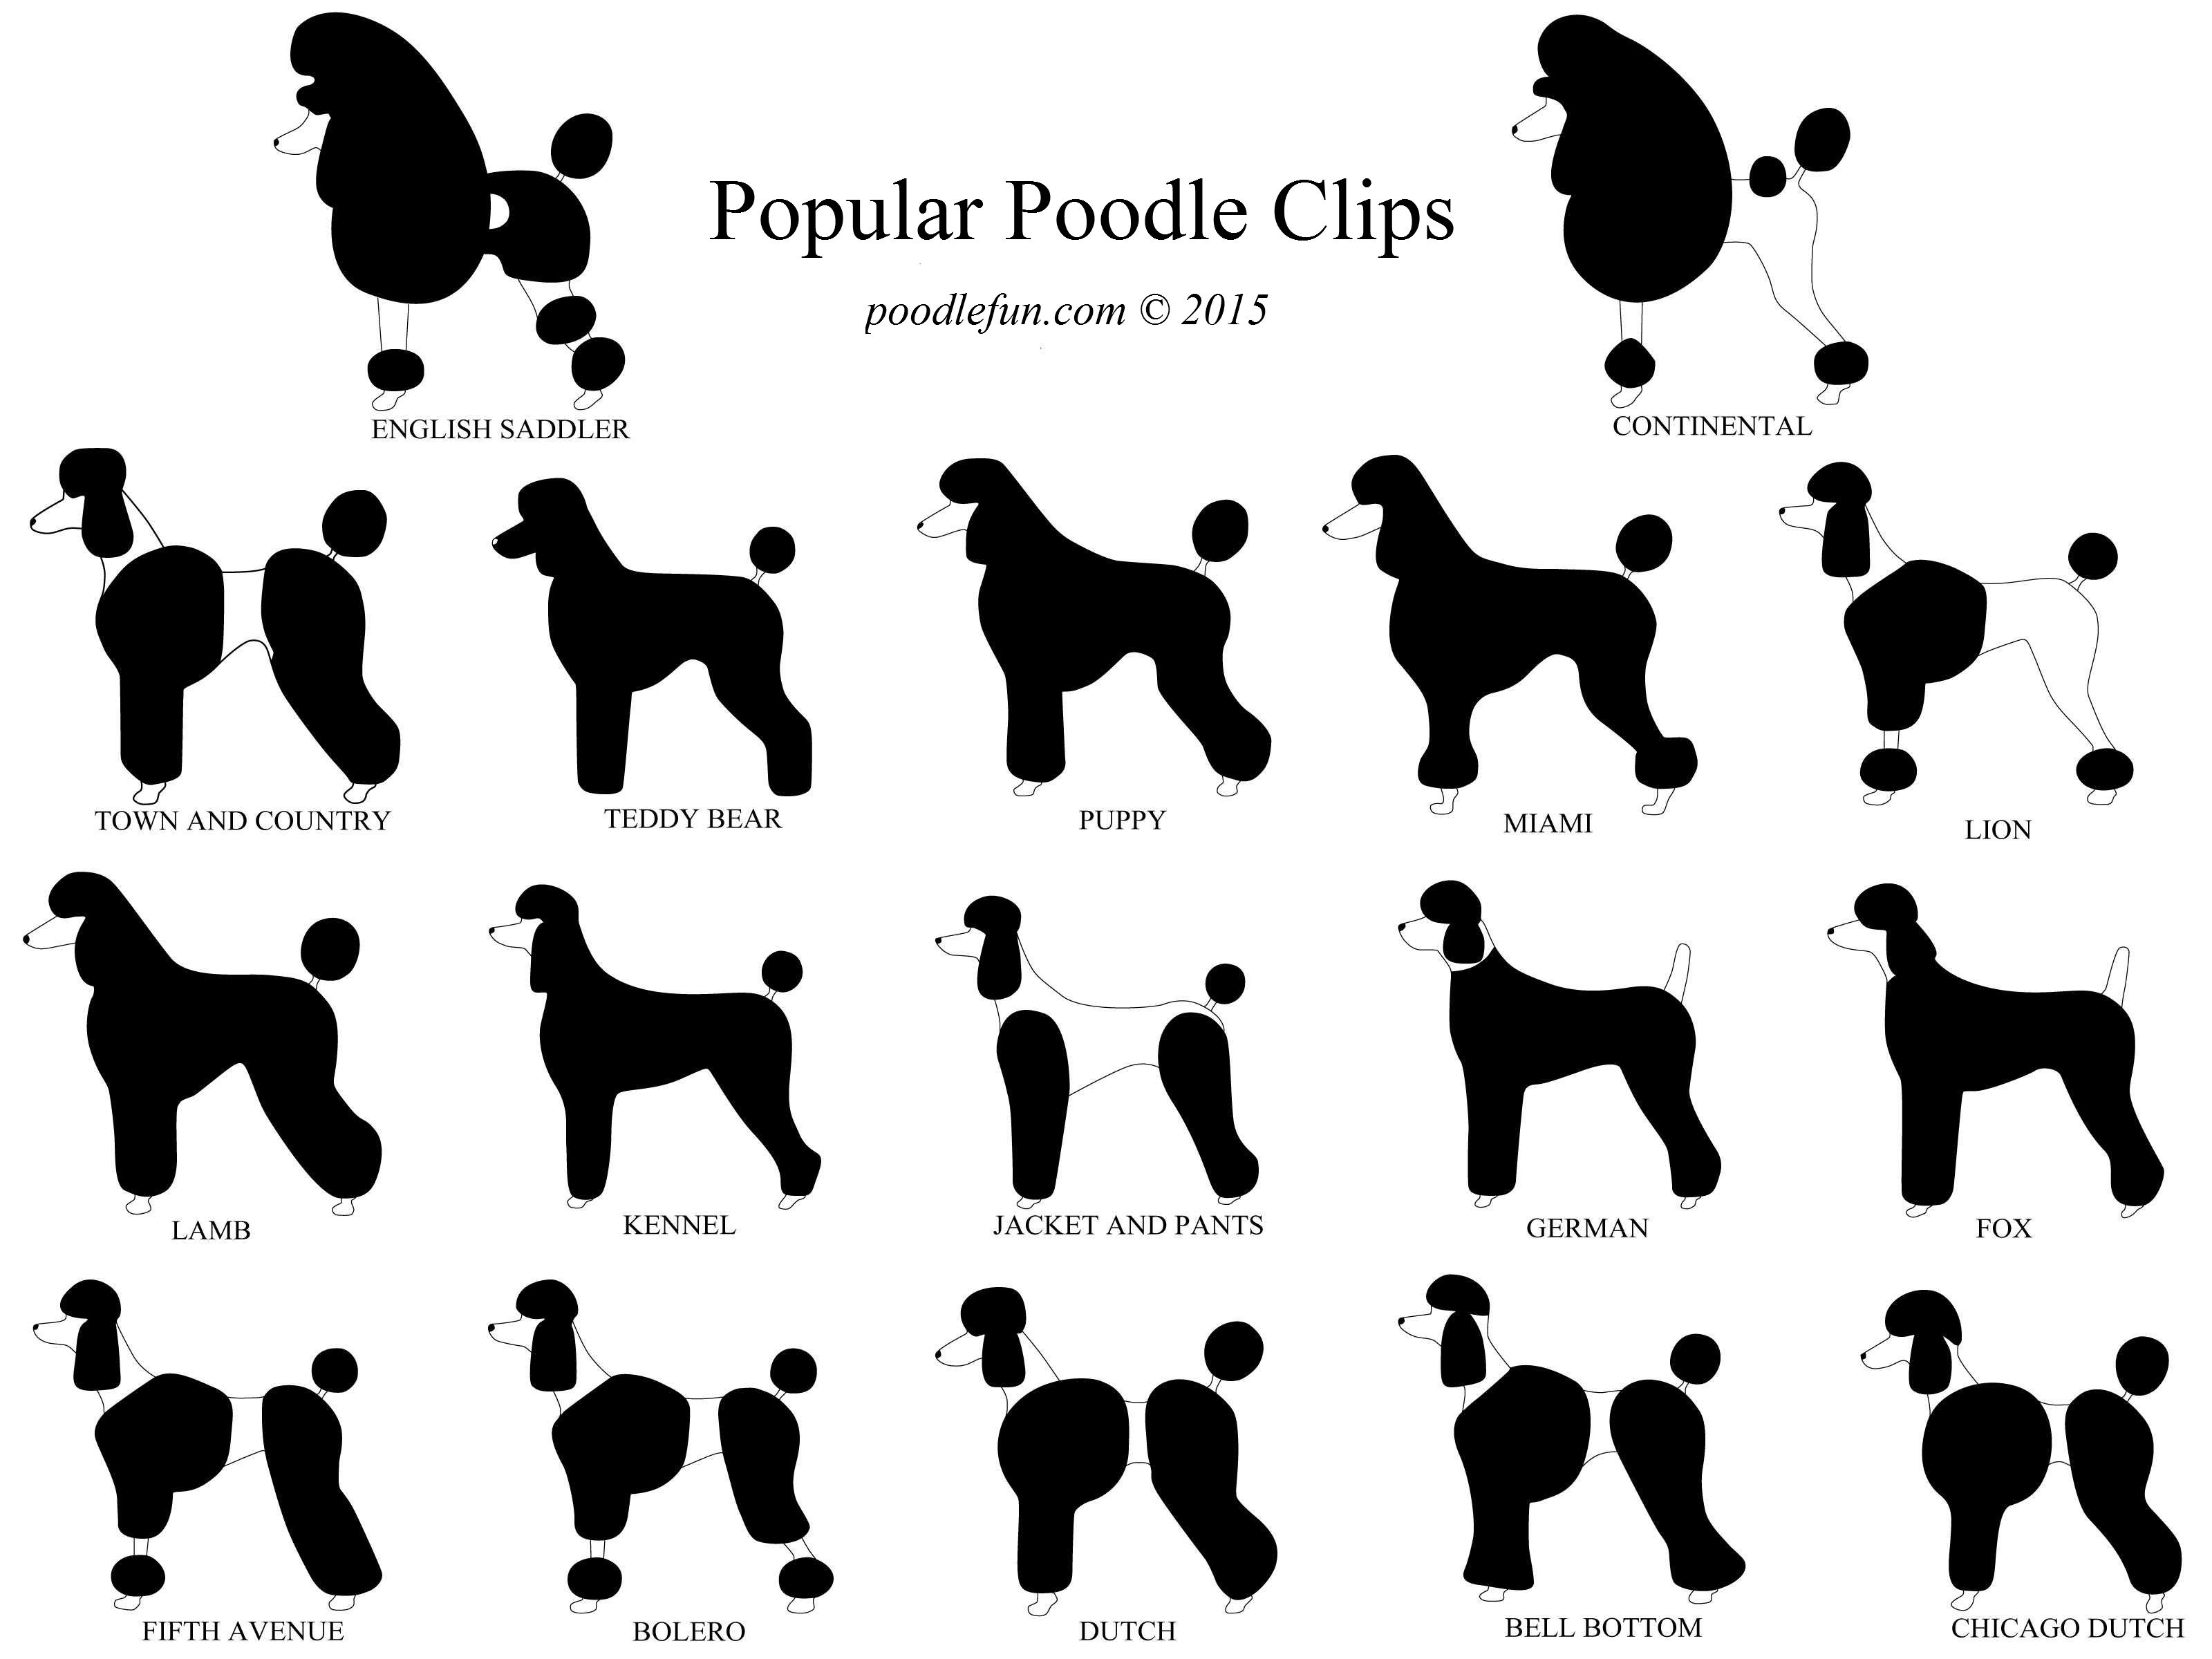 Drawn poodle continental Google modified continental Search stuff